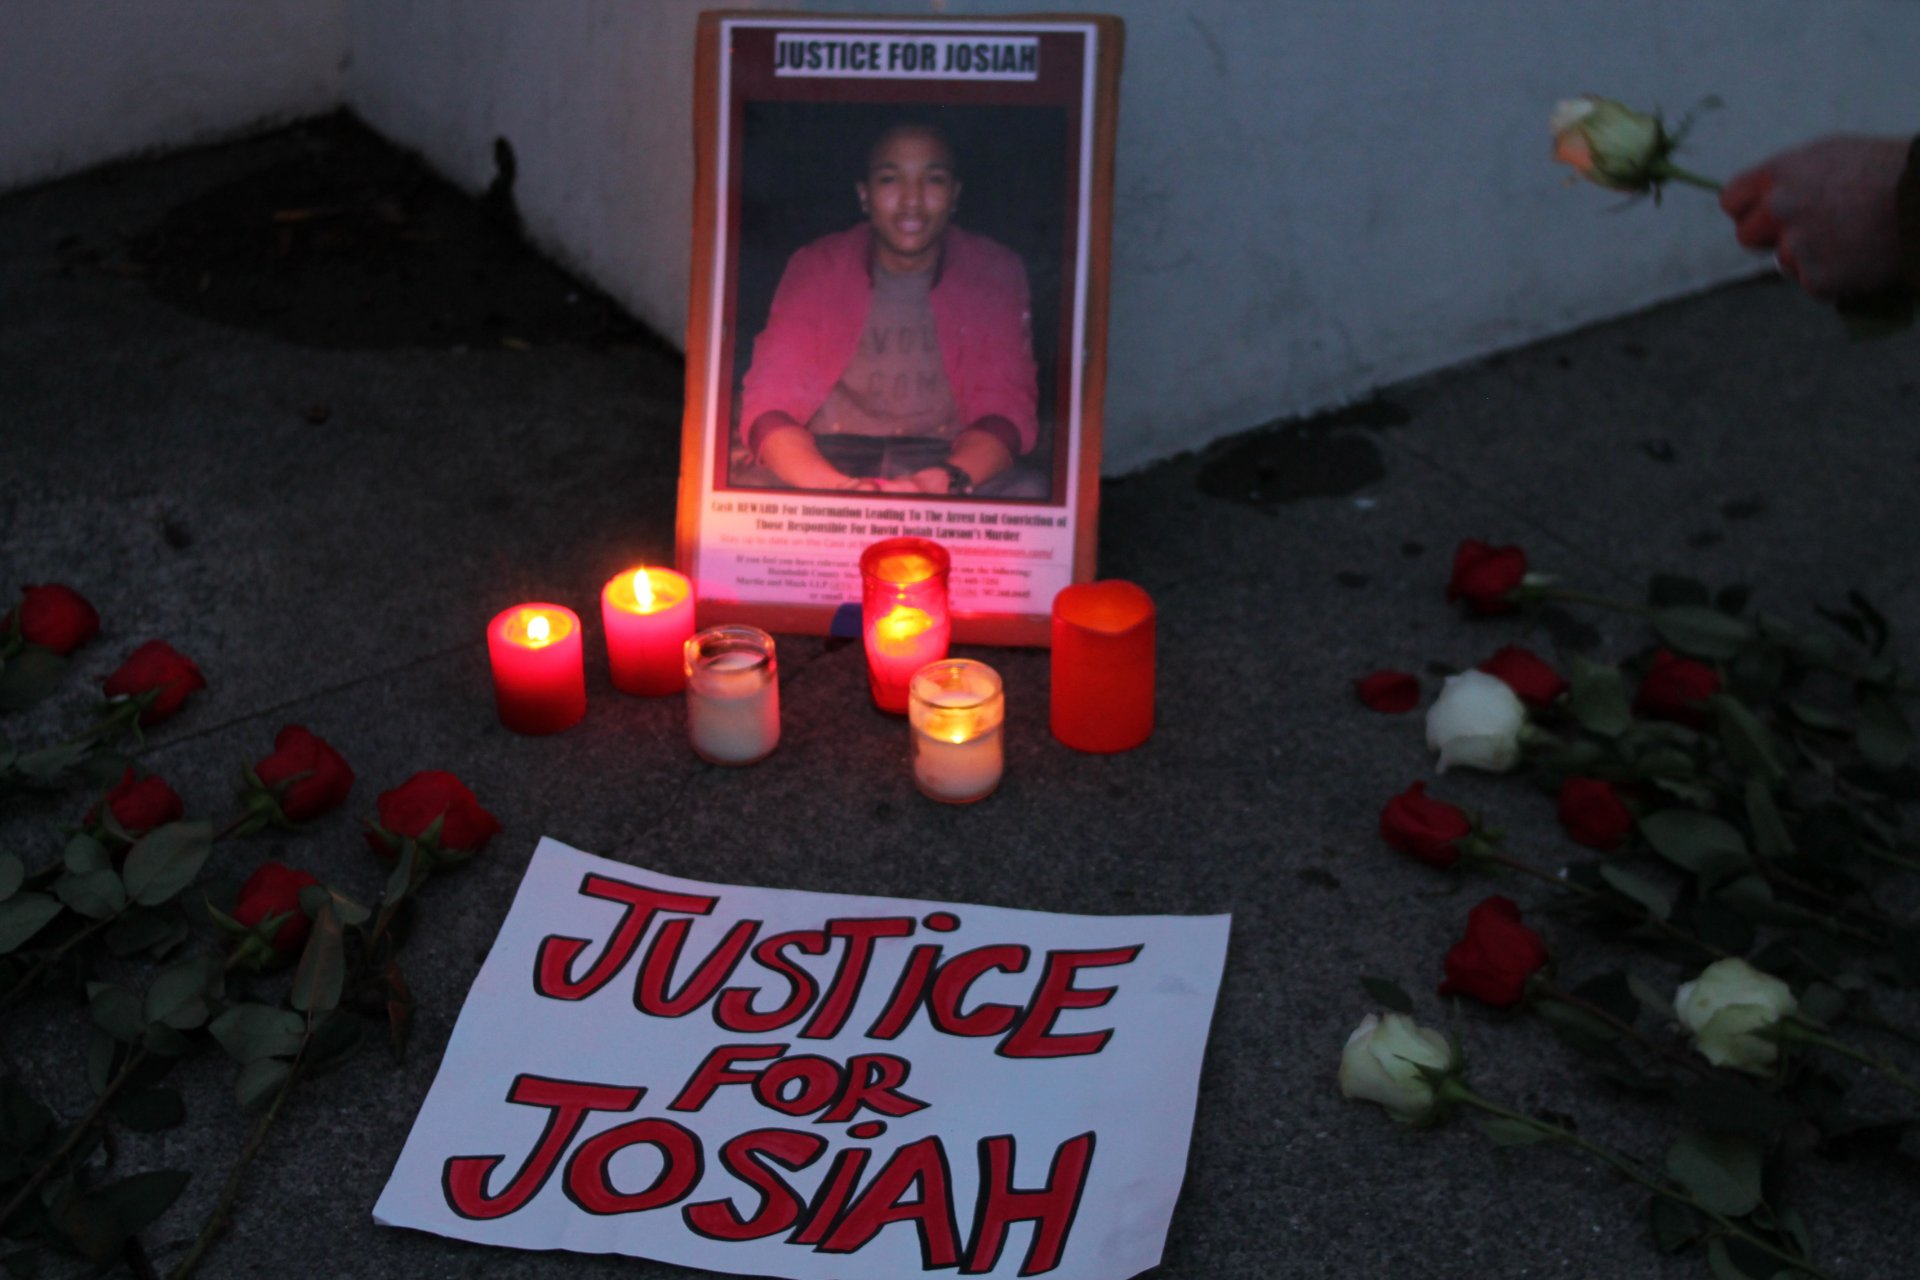 Jan. 15 marked the 21 month anniversary of David Josiah Lawson's murder. Over 50 supporters of Justice For Josiah gathered at the Humboldt County Courthouse in remembrance. Photo by T.William Wallin